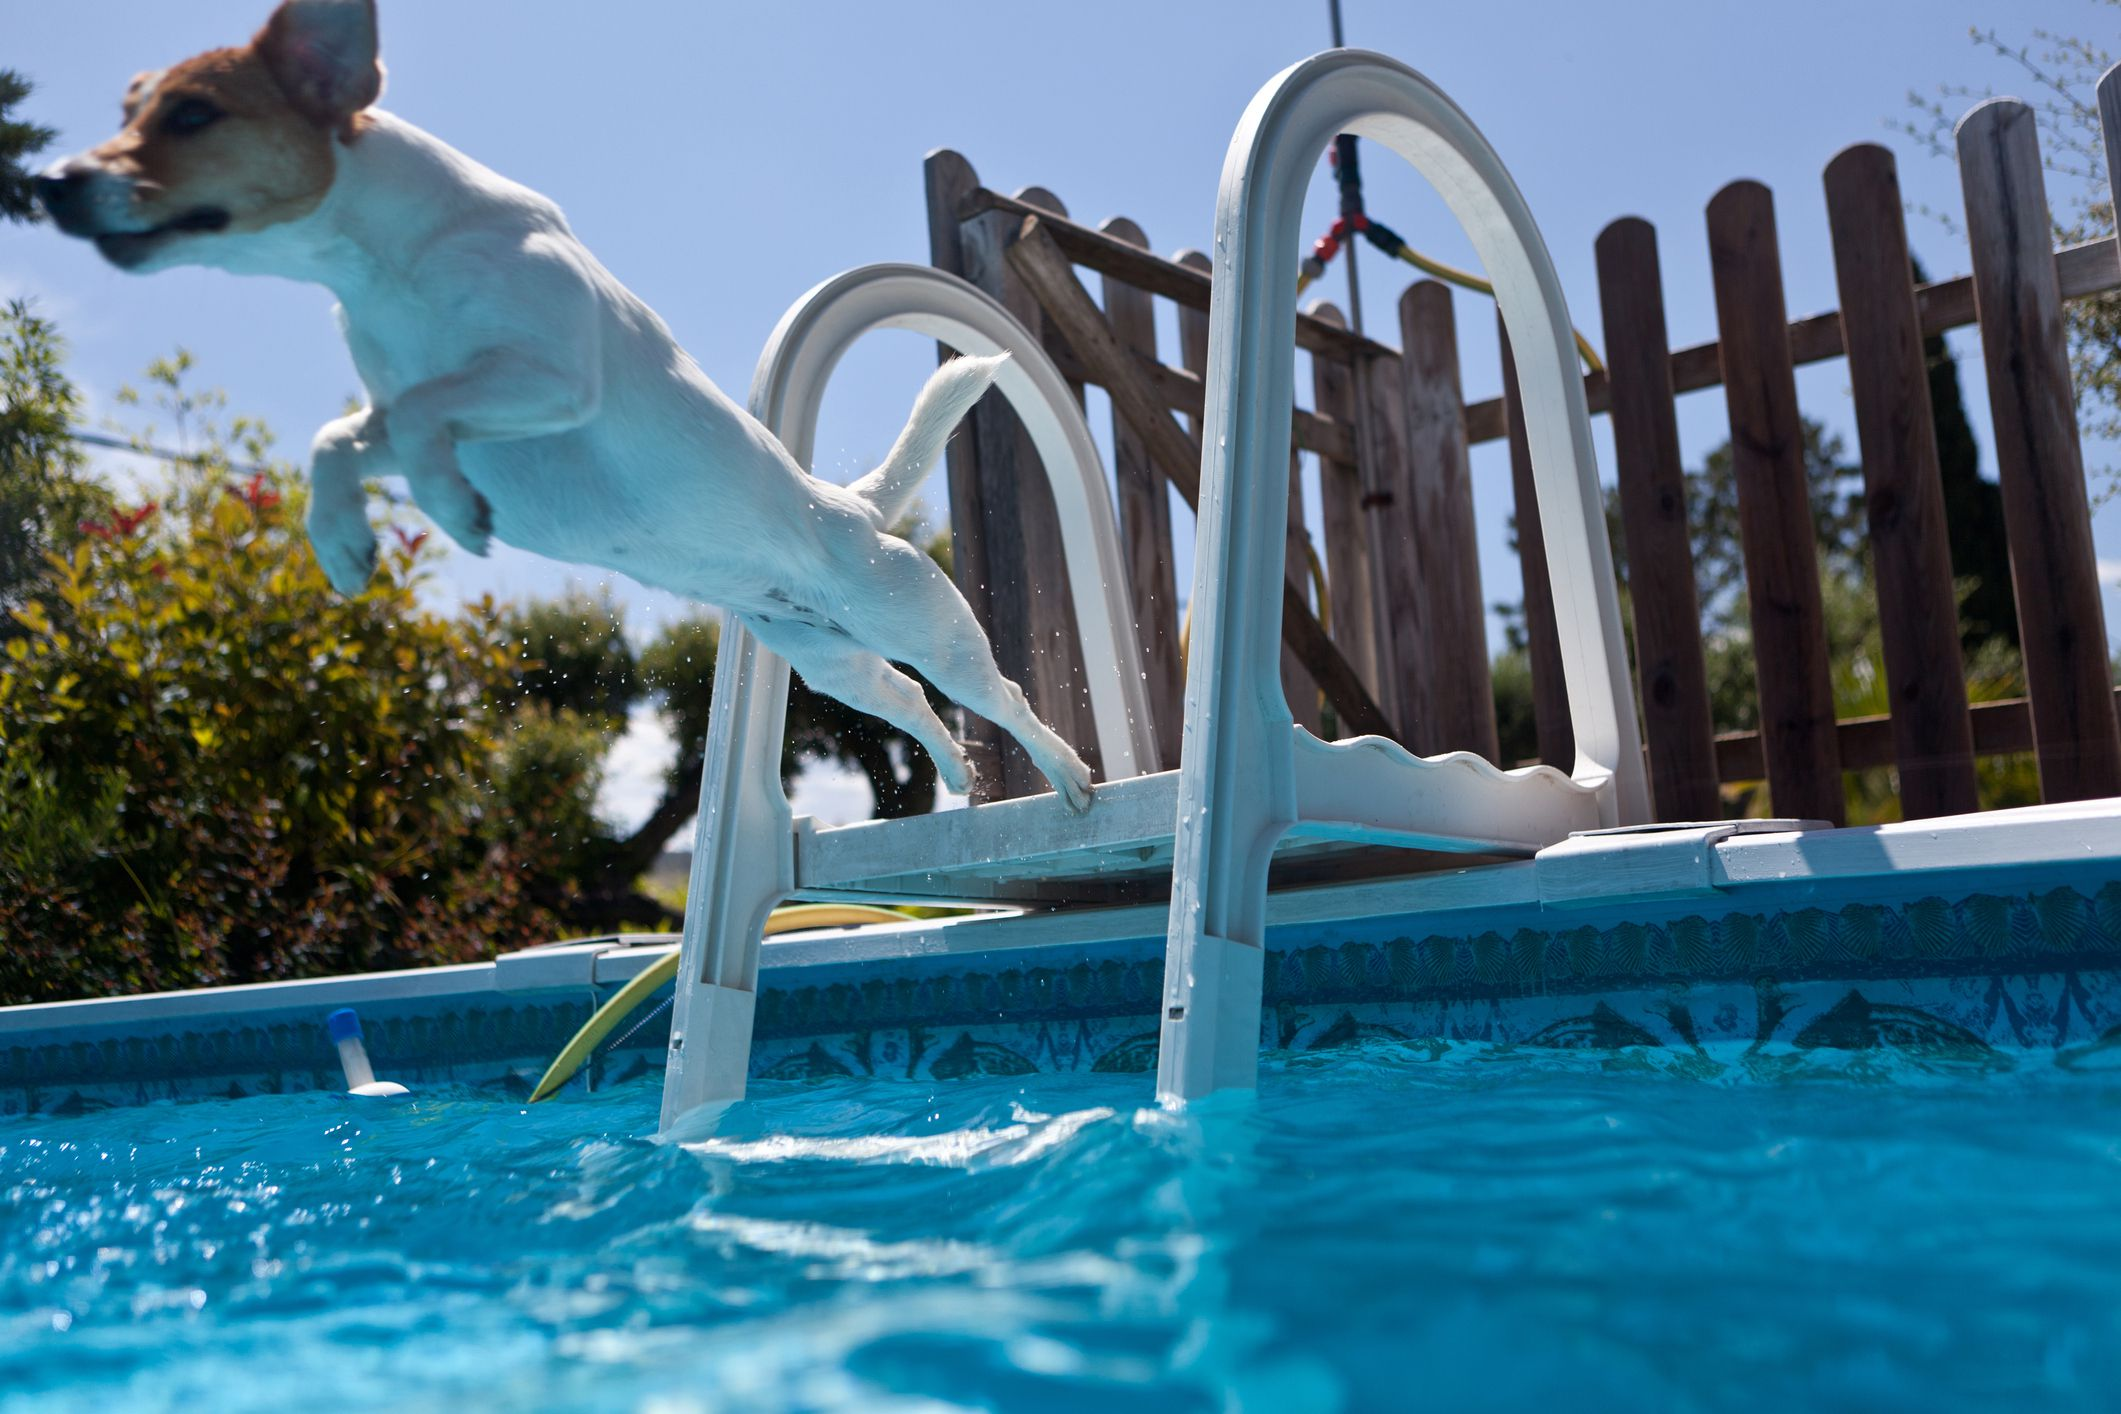 15 pool maintenance tips to keep your pool clean dog jumping in pool nvjuhfo Images